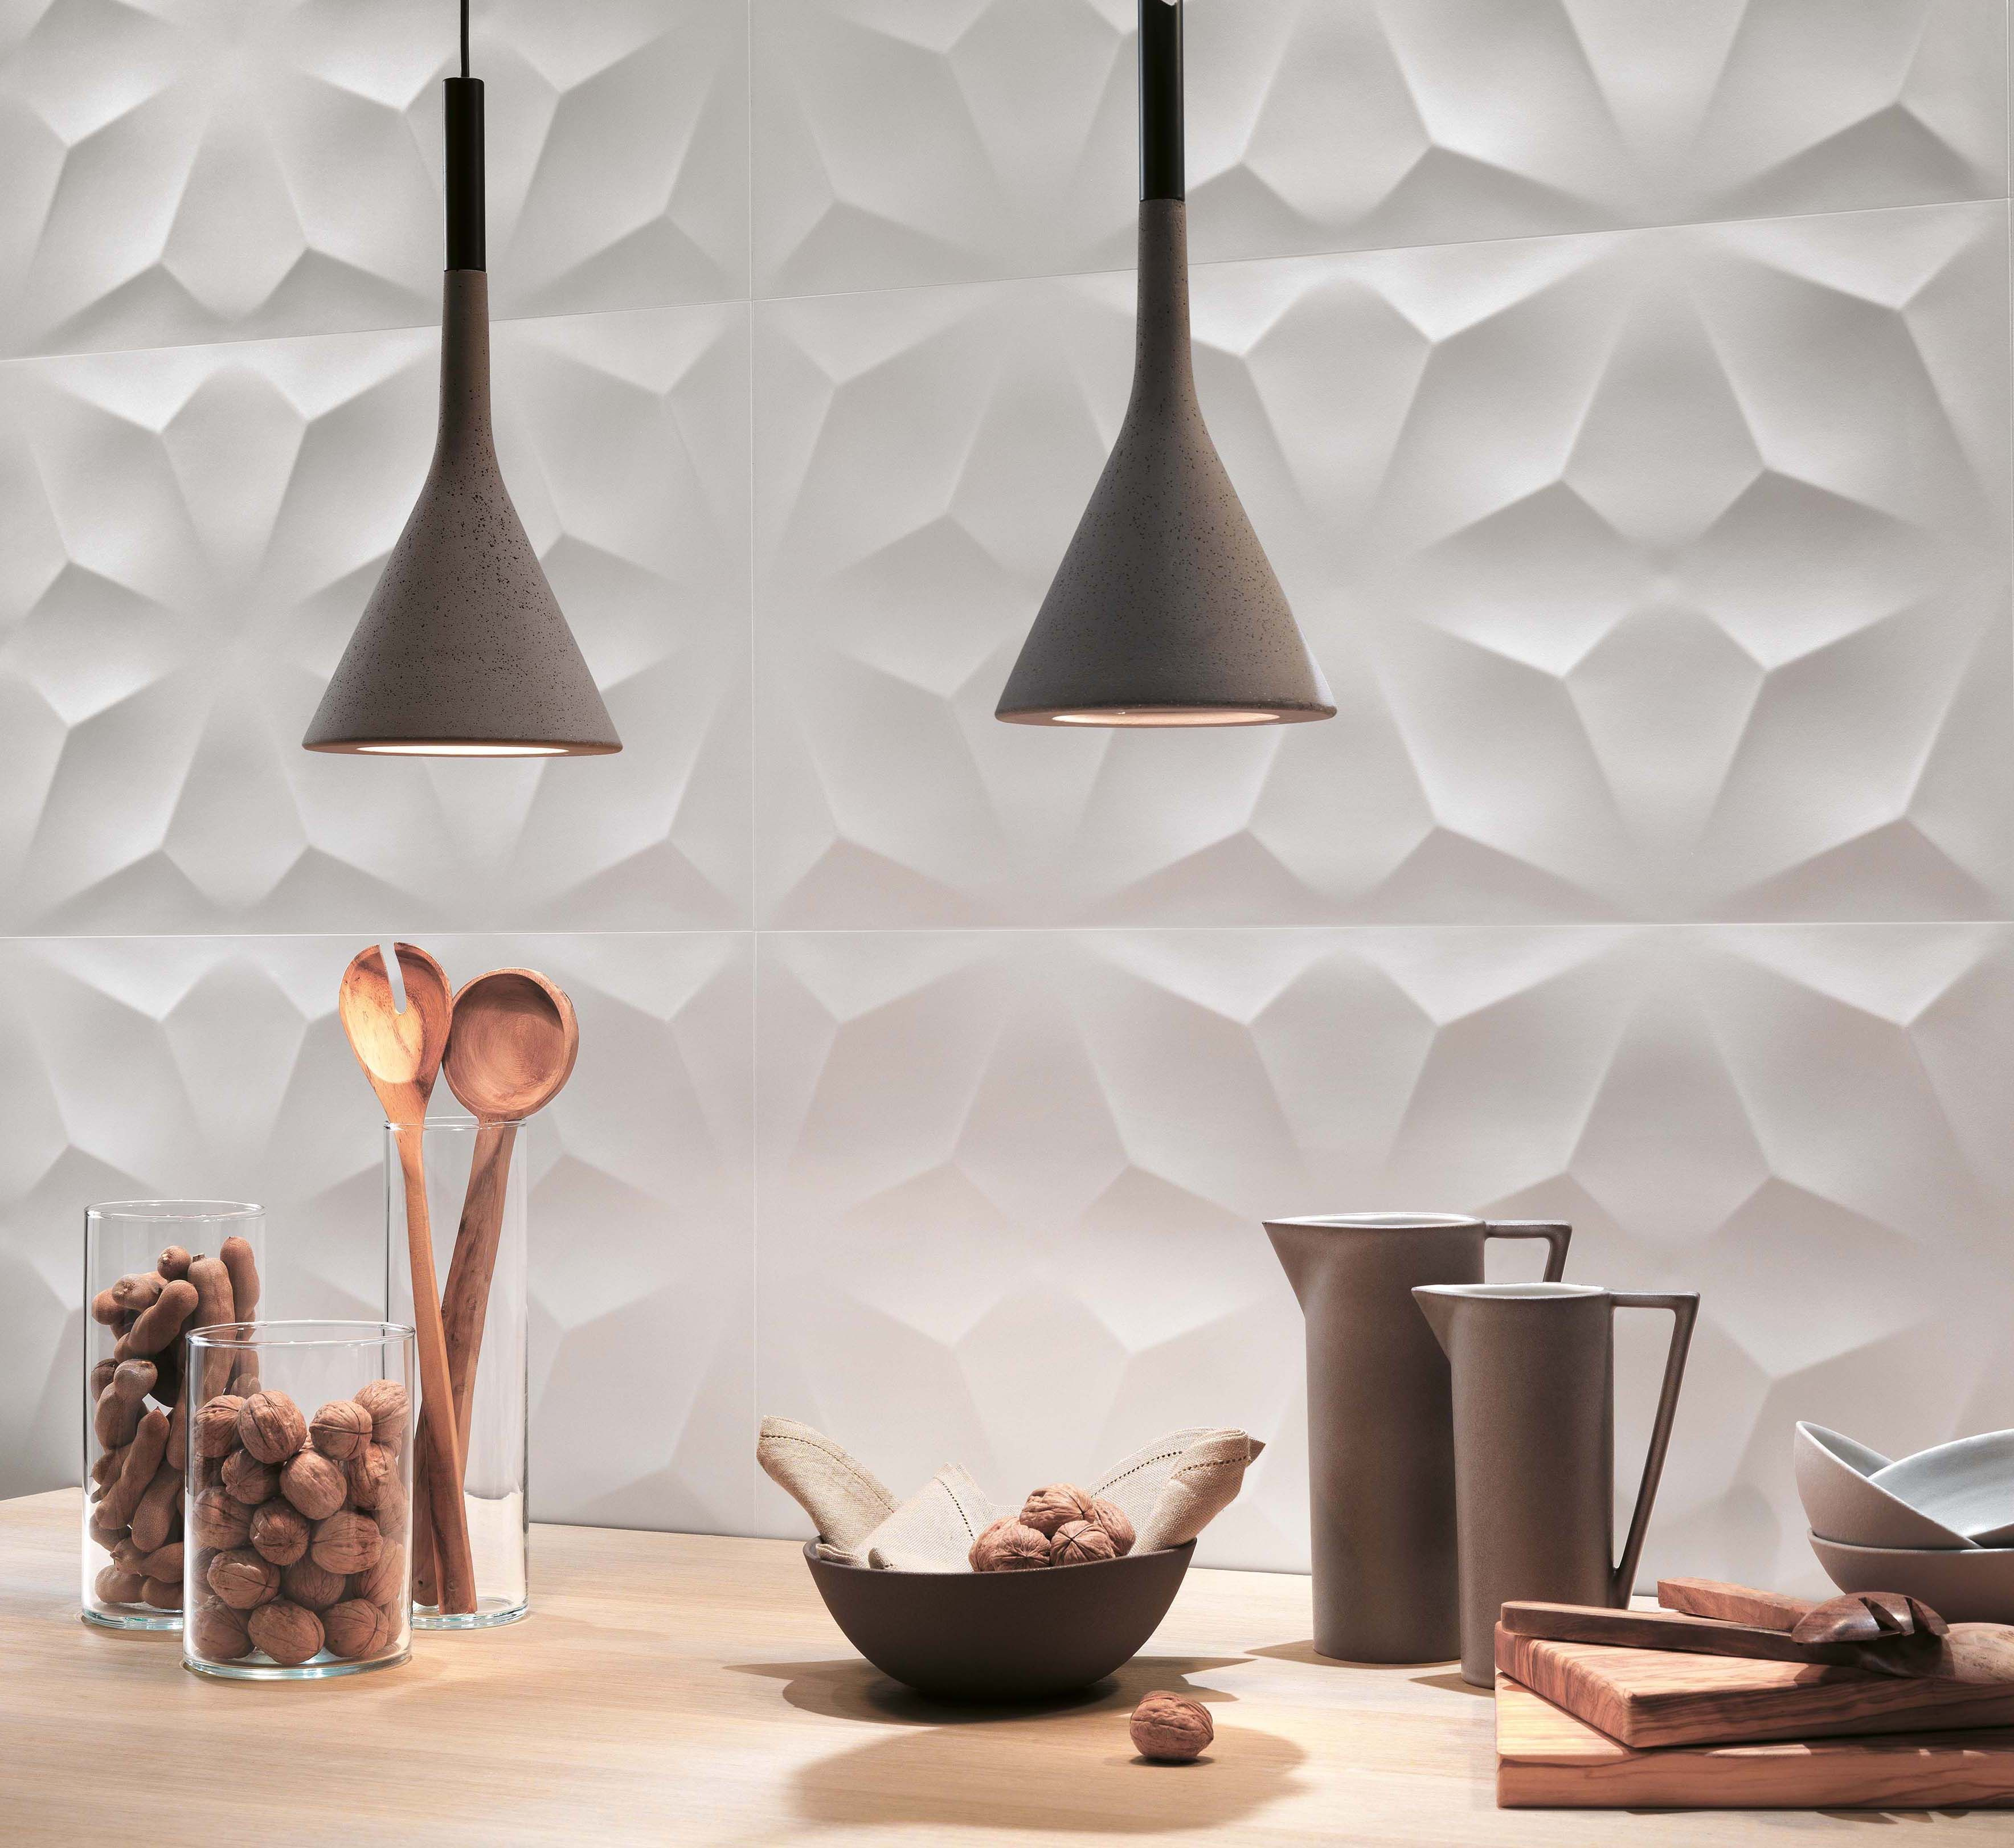 3d Wall Tiles For Kitchen: Atlas Concorde - Wall Tiles Design, 3d Wall